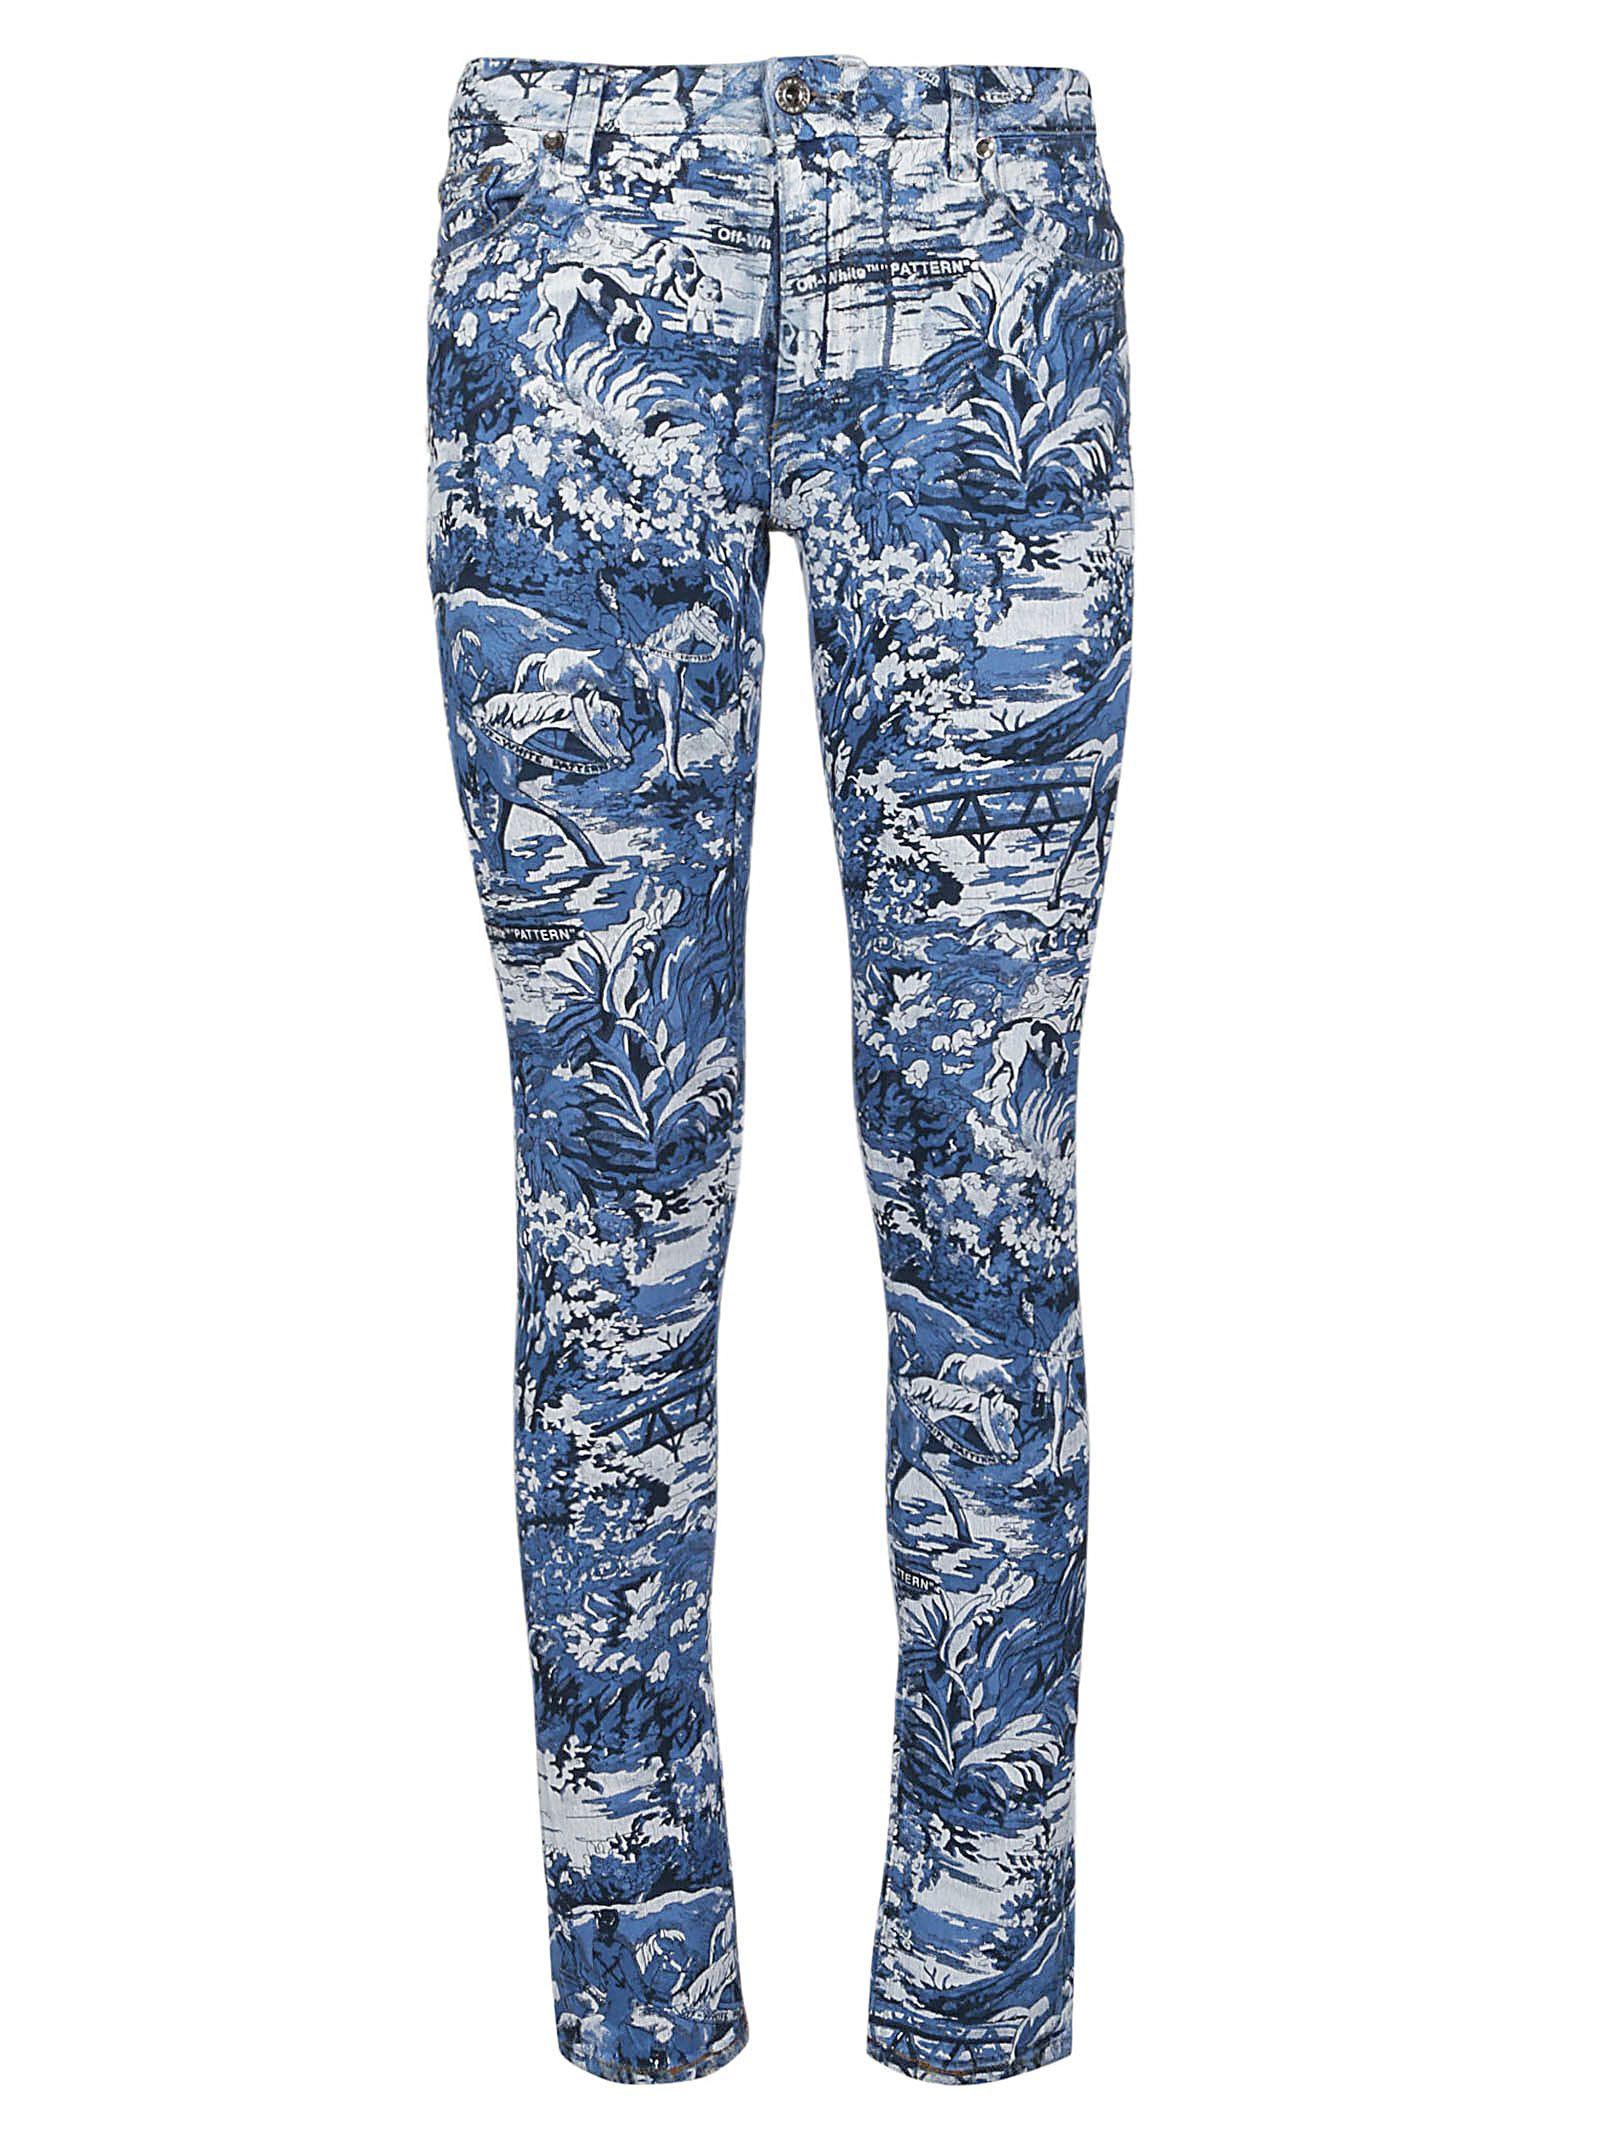 Off-white Printed Skinny Jeans